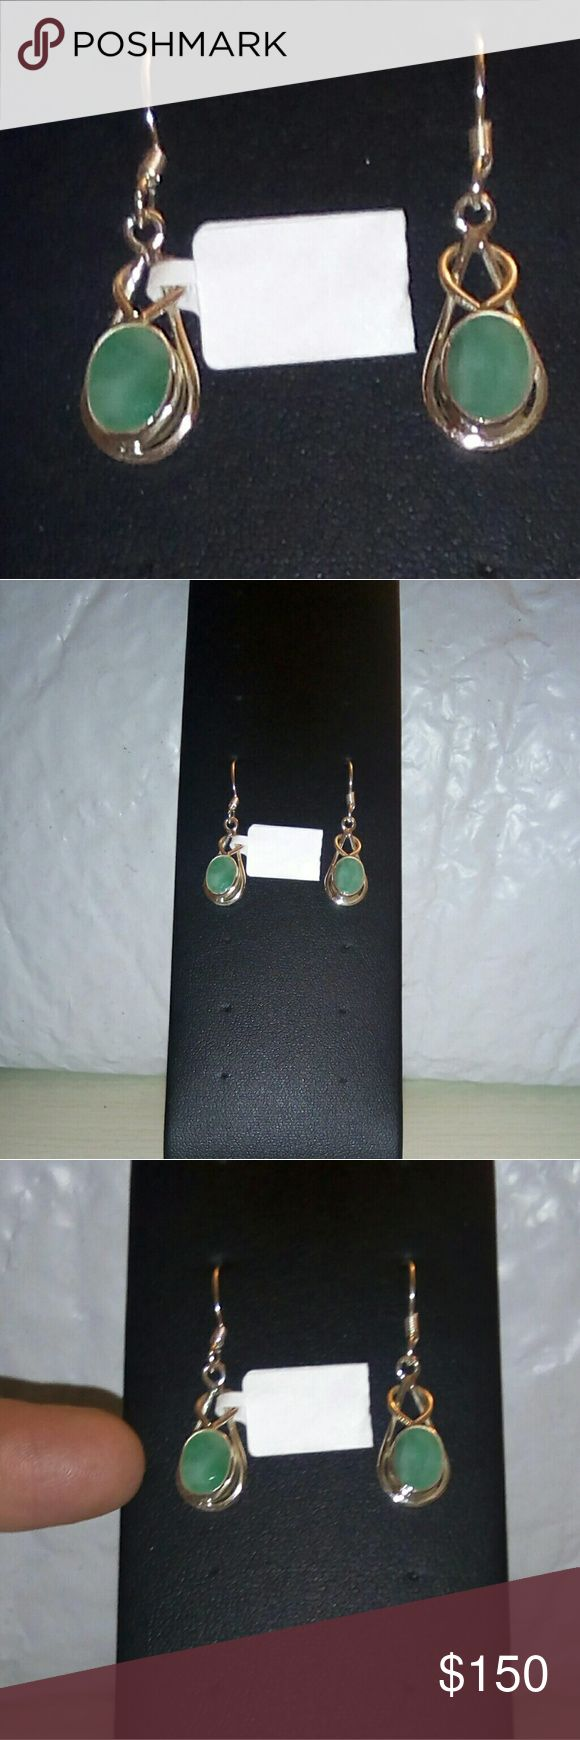 Brazilian Emerald Silver Earrings TGW 2.46cts. Brazilian Emerald Silver Earrings TGW 2.46cts.  #72232.  MFSR $300.  May birthstone said to be a stone of wisdom, enhancing memory & increasing mental clarity. It combines intelligence with discernment & brings to the conscious mind what is unconsciously known. To keep silver from tarnishing use pouch and anti-tarnish piece included when not wearing.  Please do not remove secure tab label until sure you want to keep.  Avoid harsh soaps and…